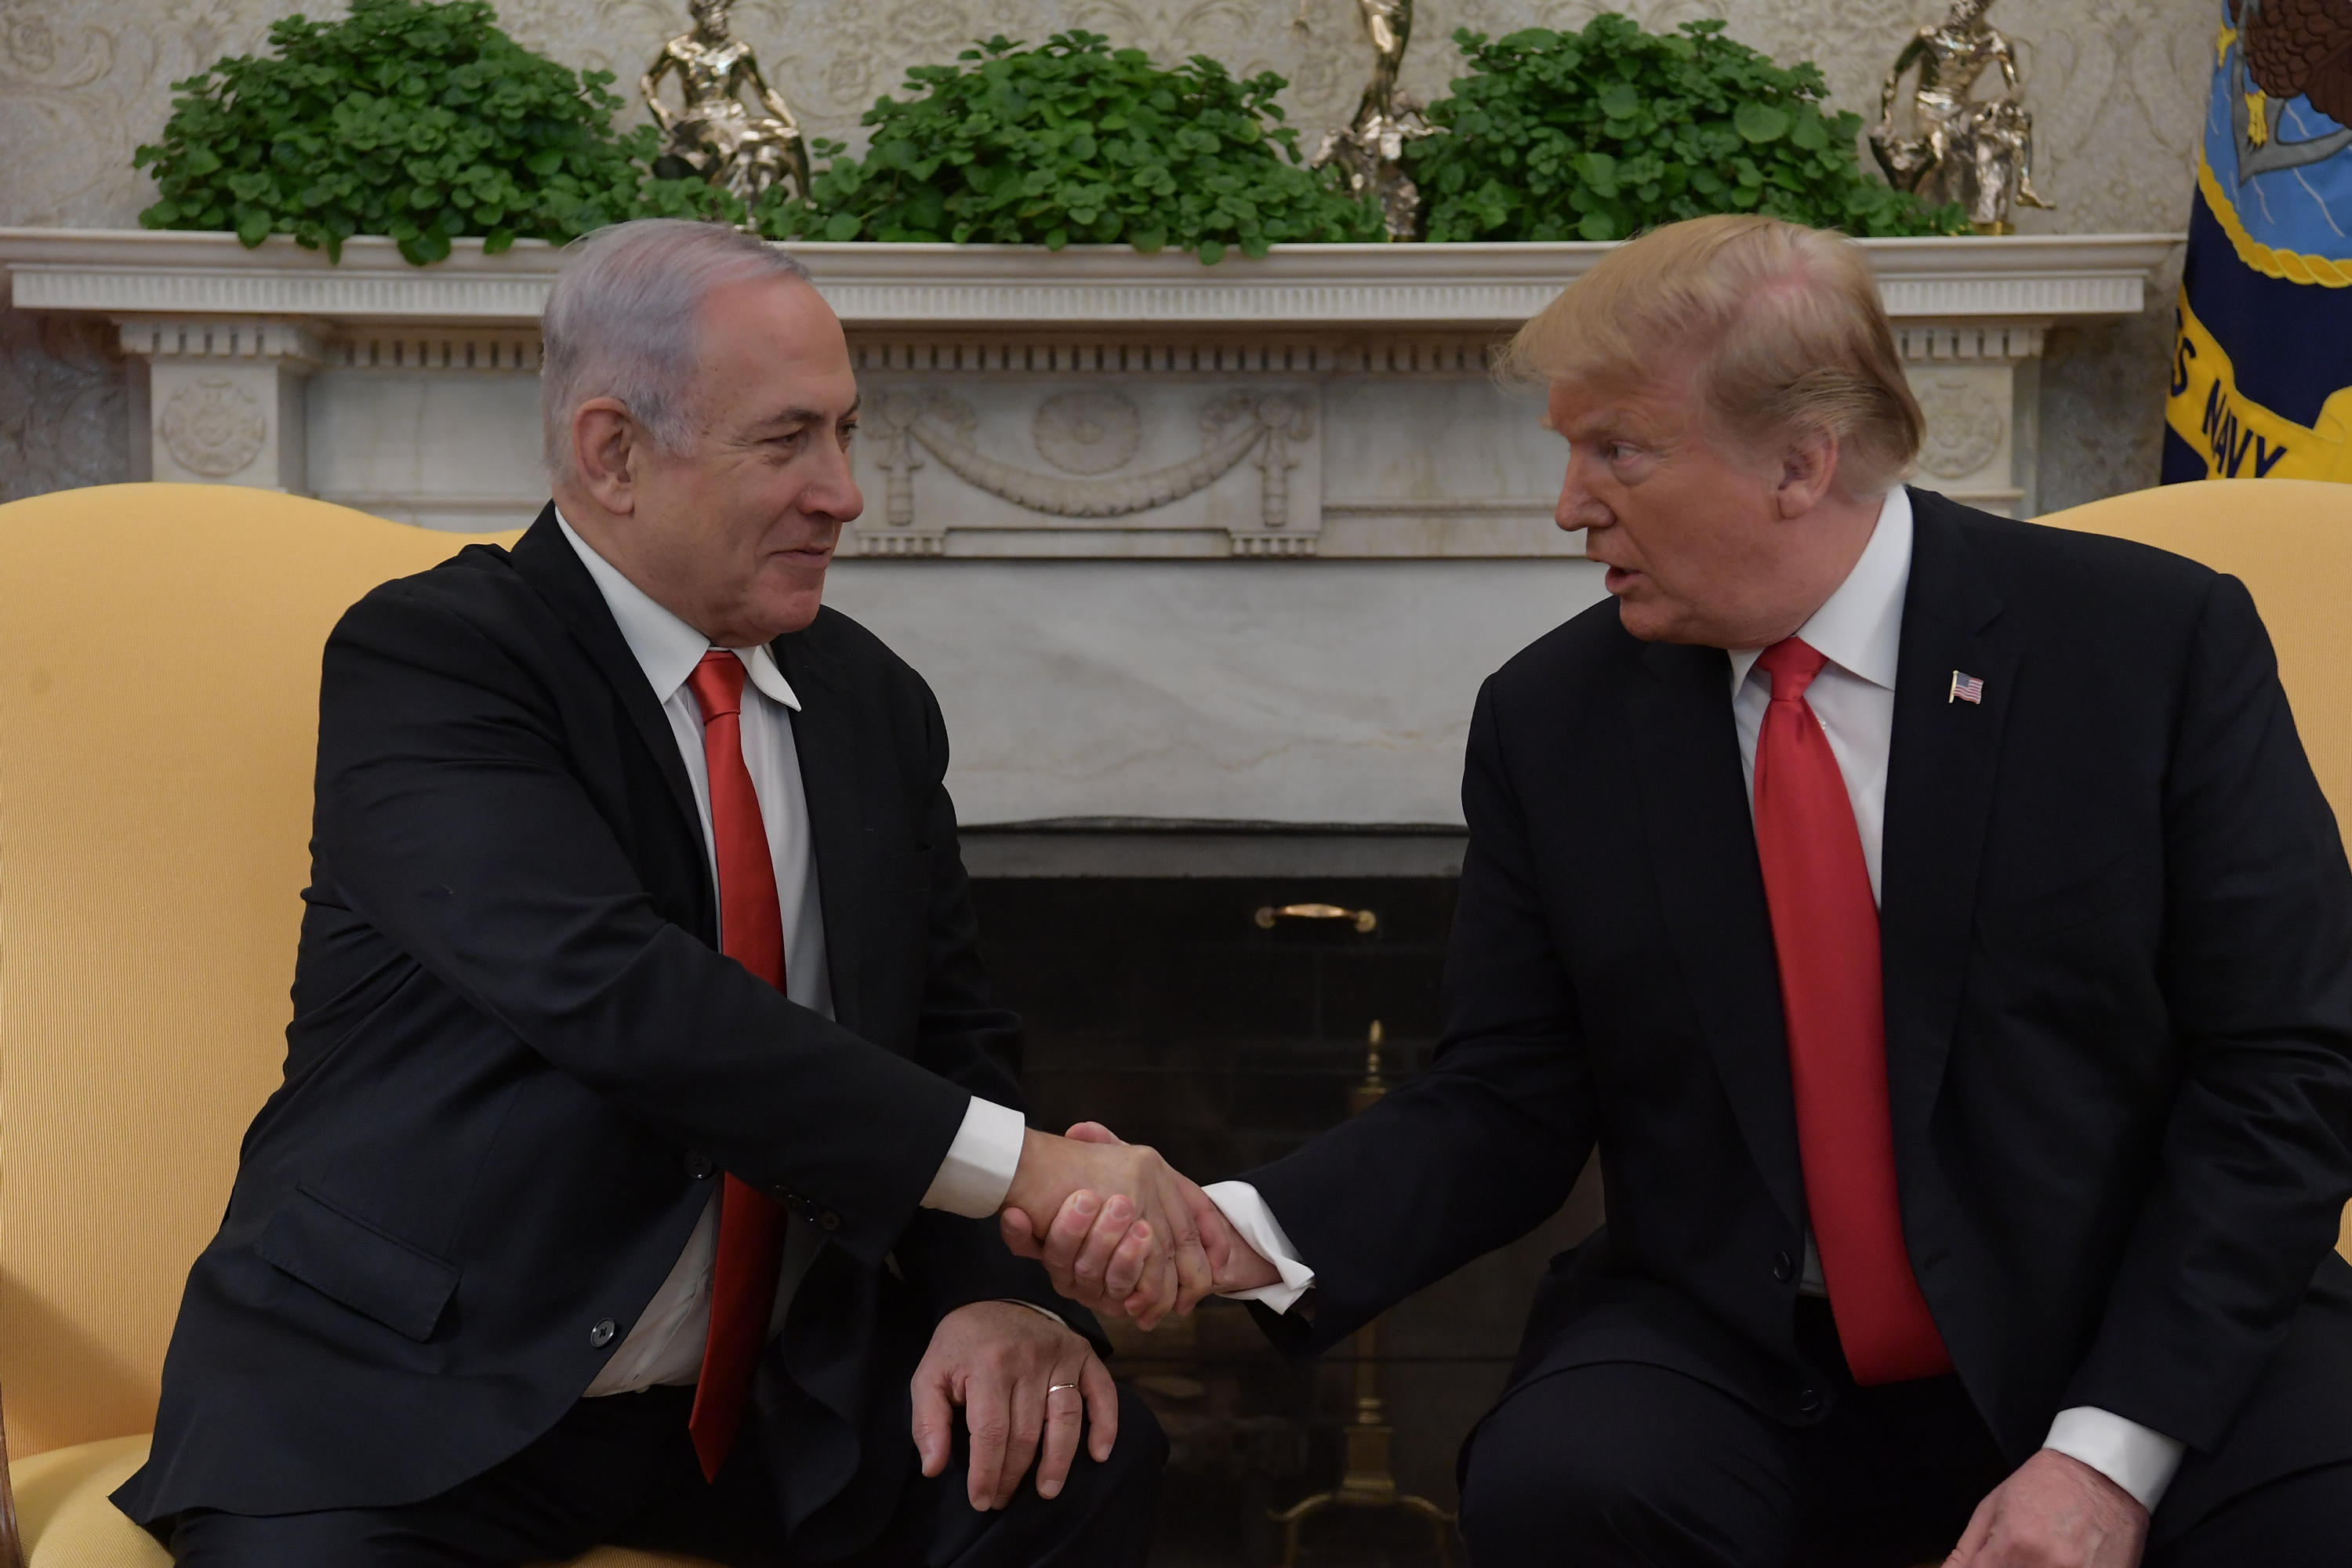 PM Netanyahu and POTUS Trump